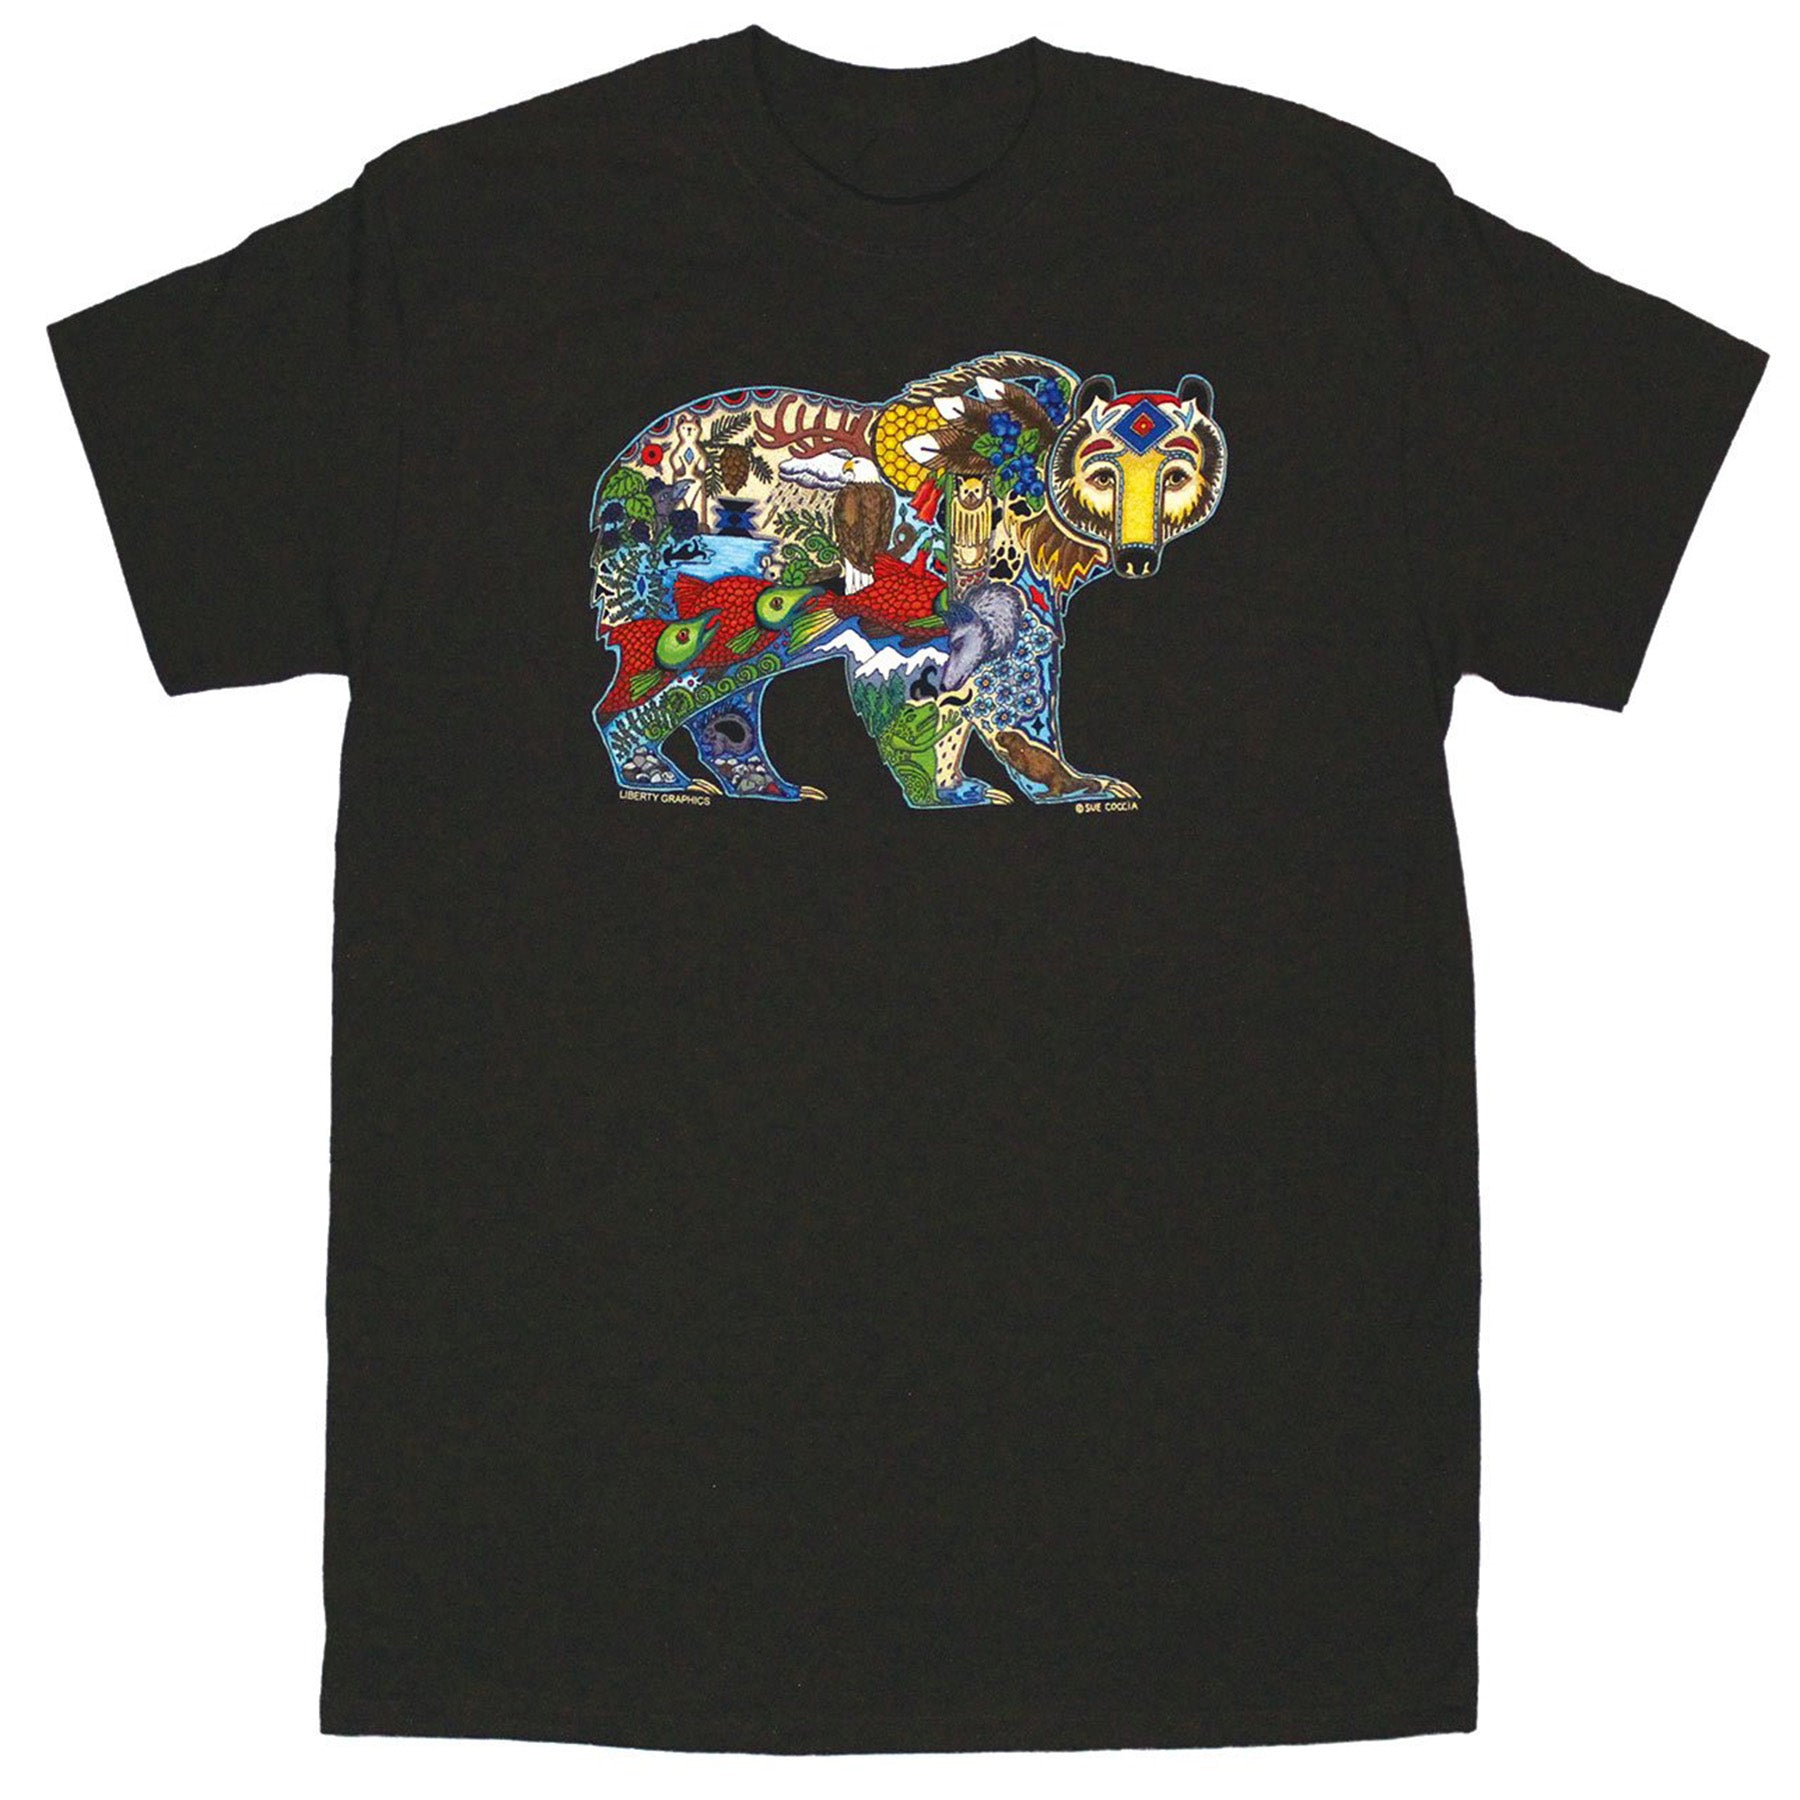 earth art grizzly tee on dark chocolate background